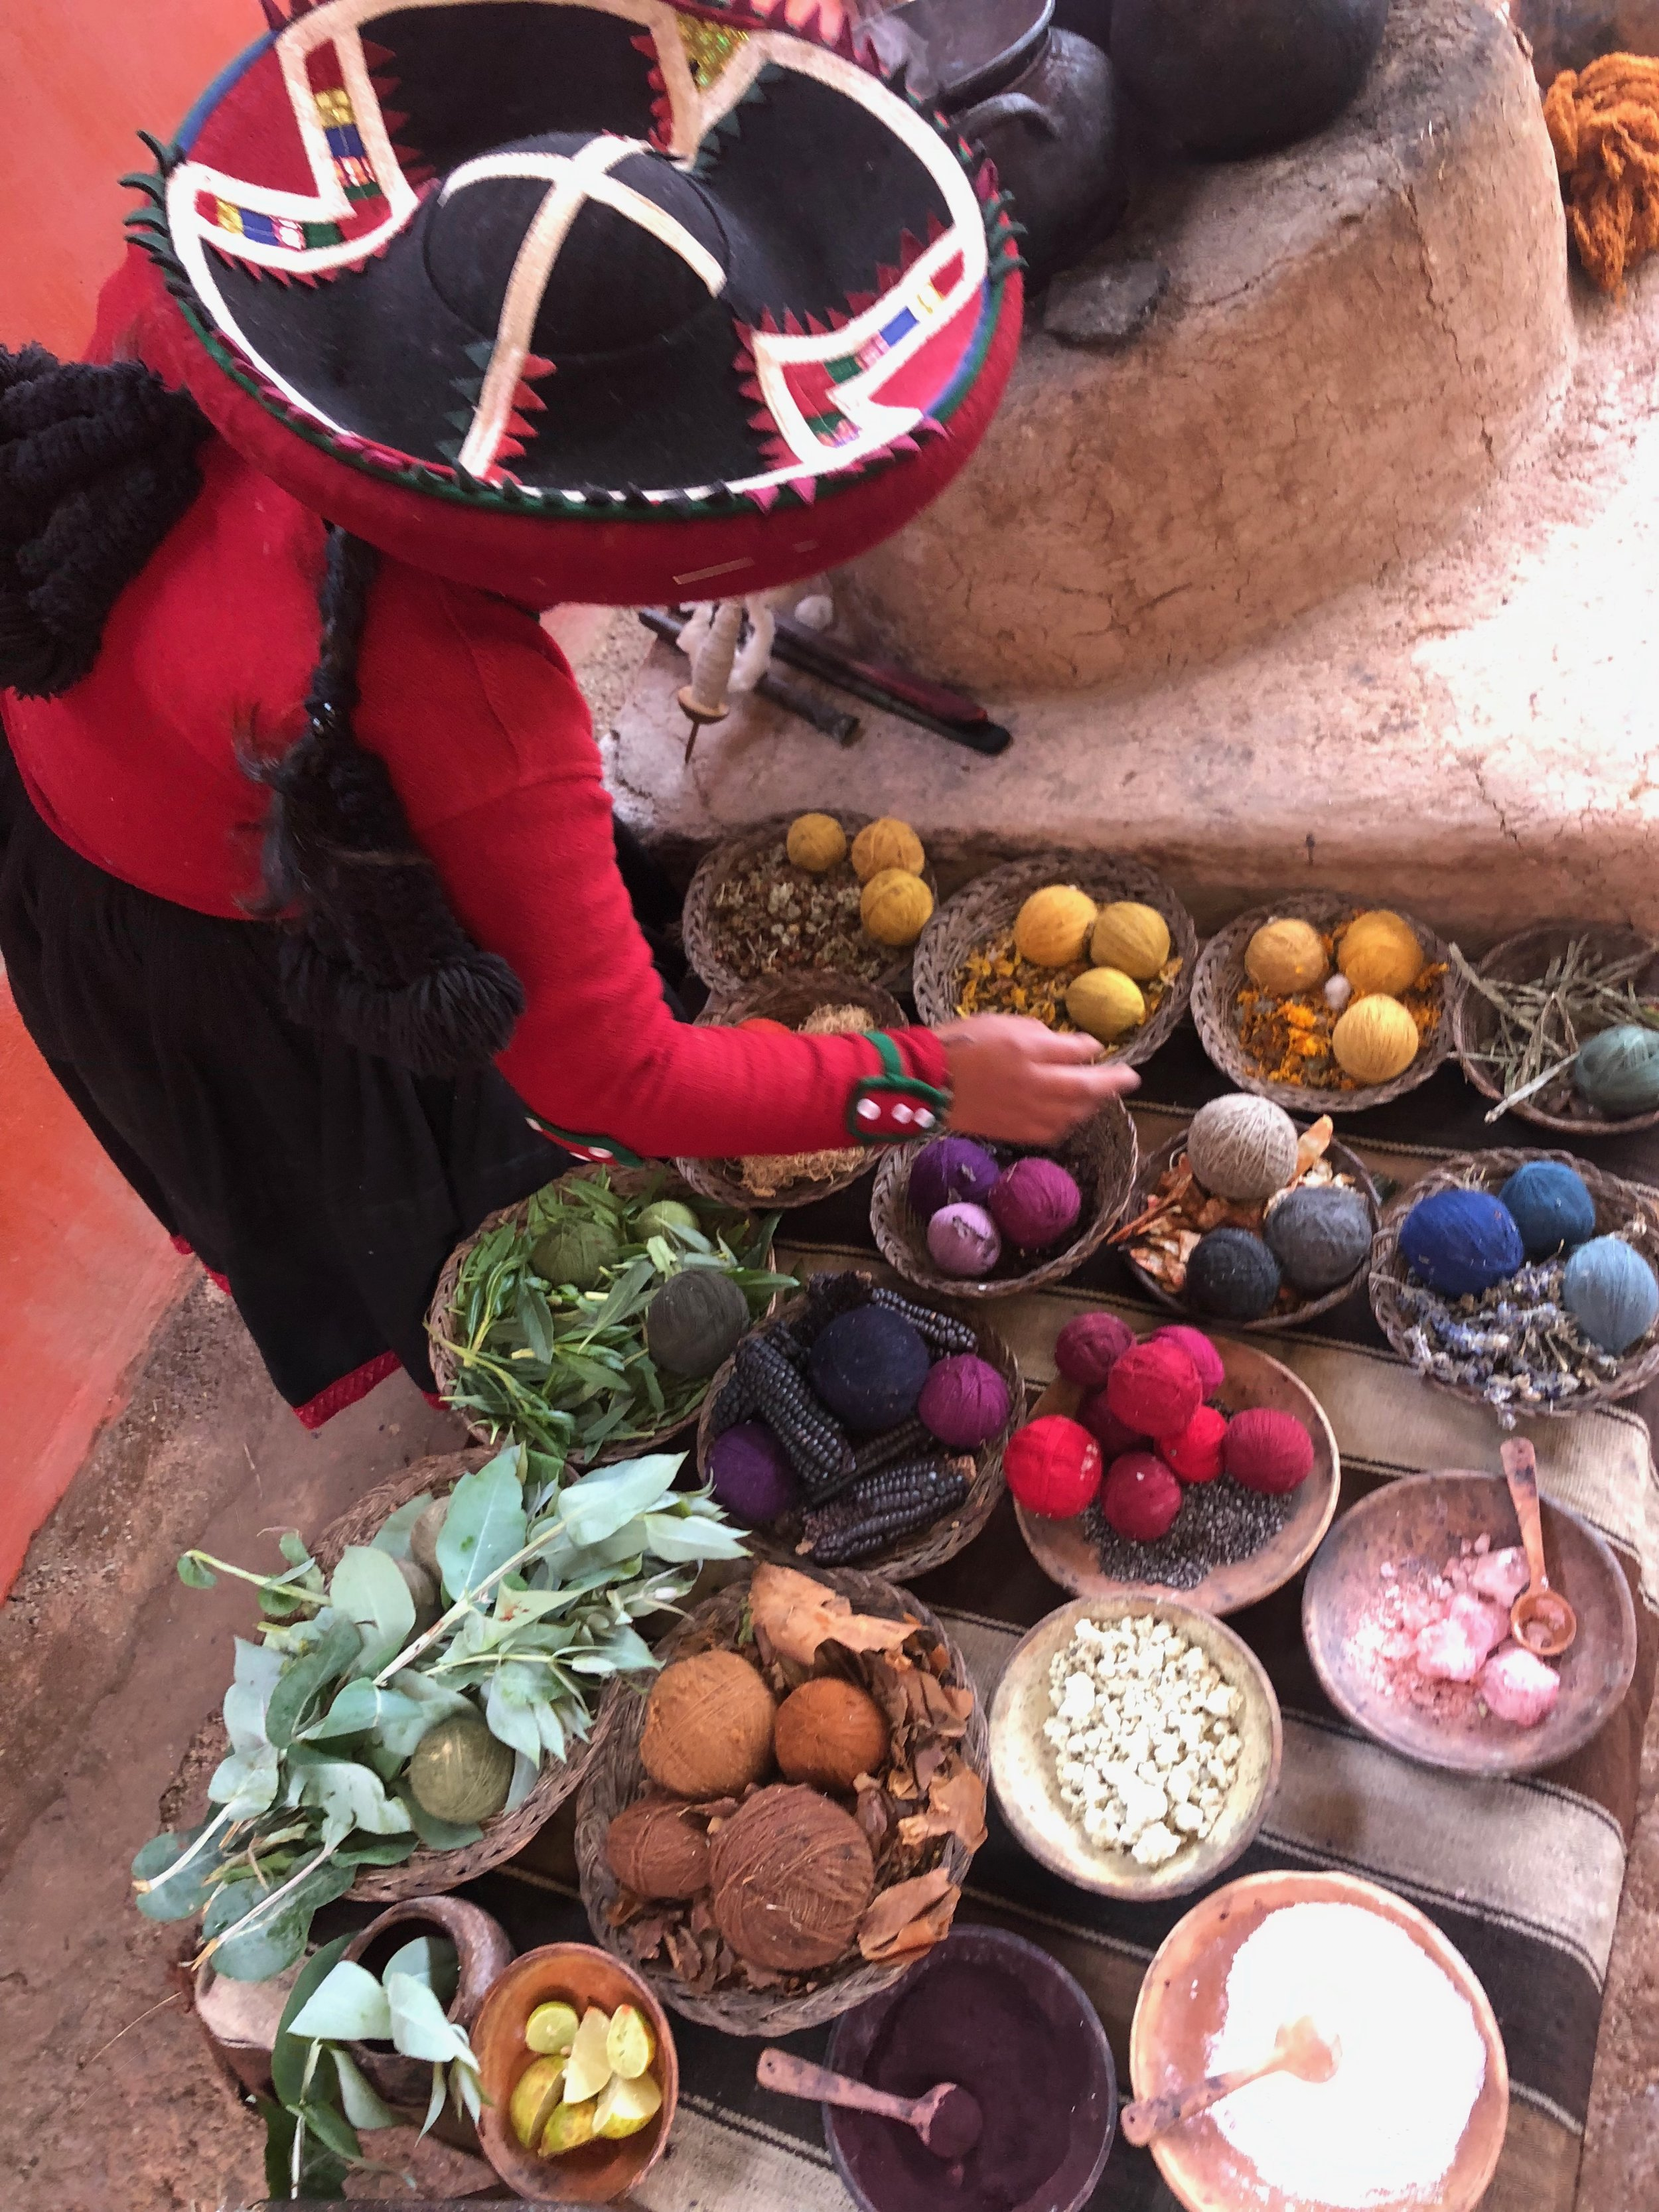 Chinchero-weaving-sacred-valley-textiles-peru-south-america-natural-dying